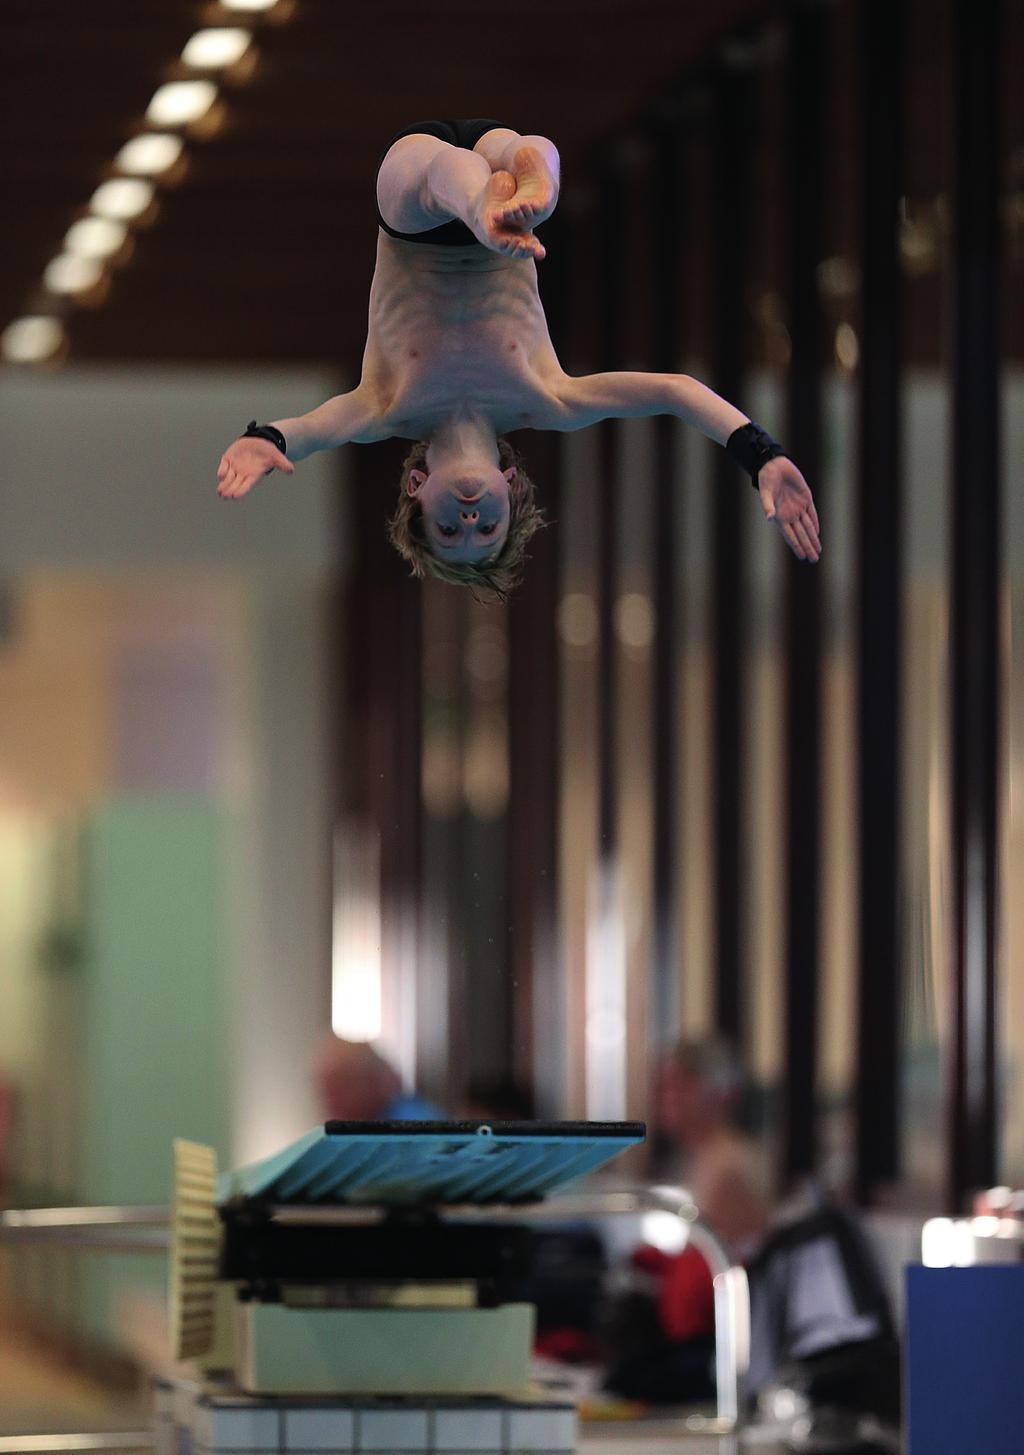 DIVE 1 / LEARN TO DIVE To introduce new core aquatic skills, try out diving and cross over from swimming, gymnastics or trampolining.